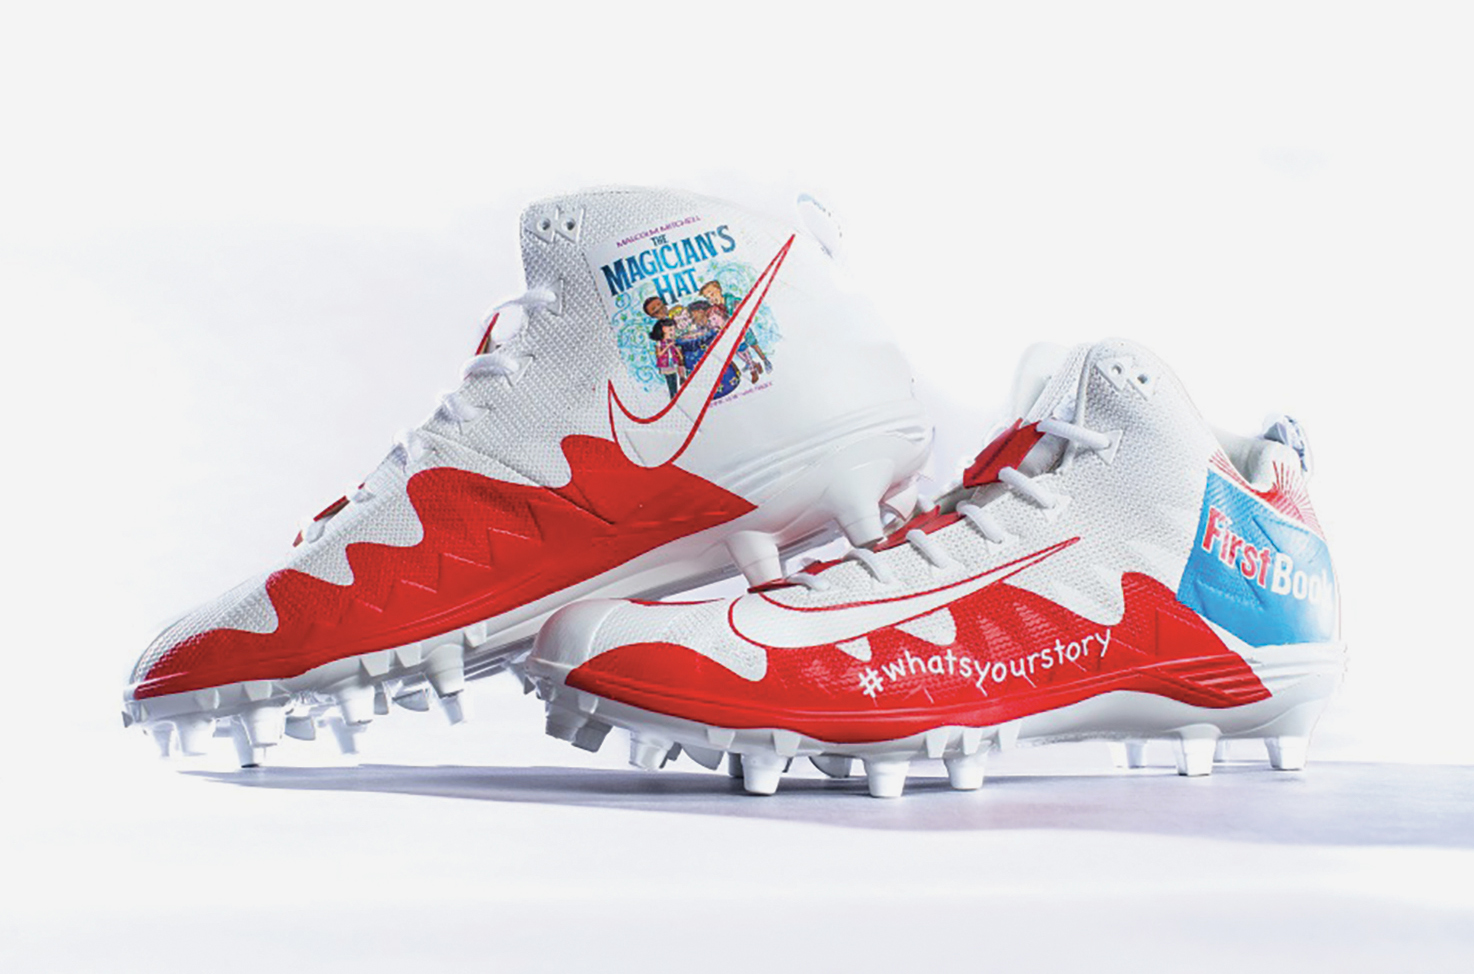 Todd Gurley chose to represent First Book (Literacy) with his cleats. (Rams wire courtesy photo)